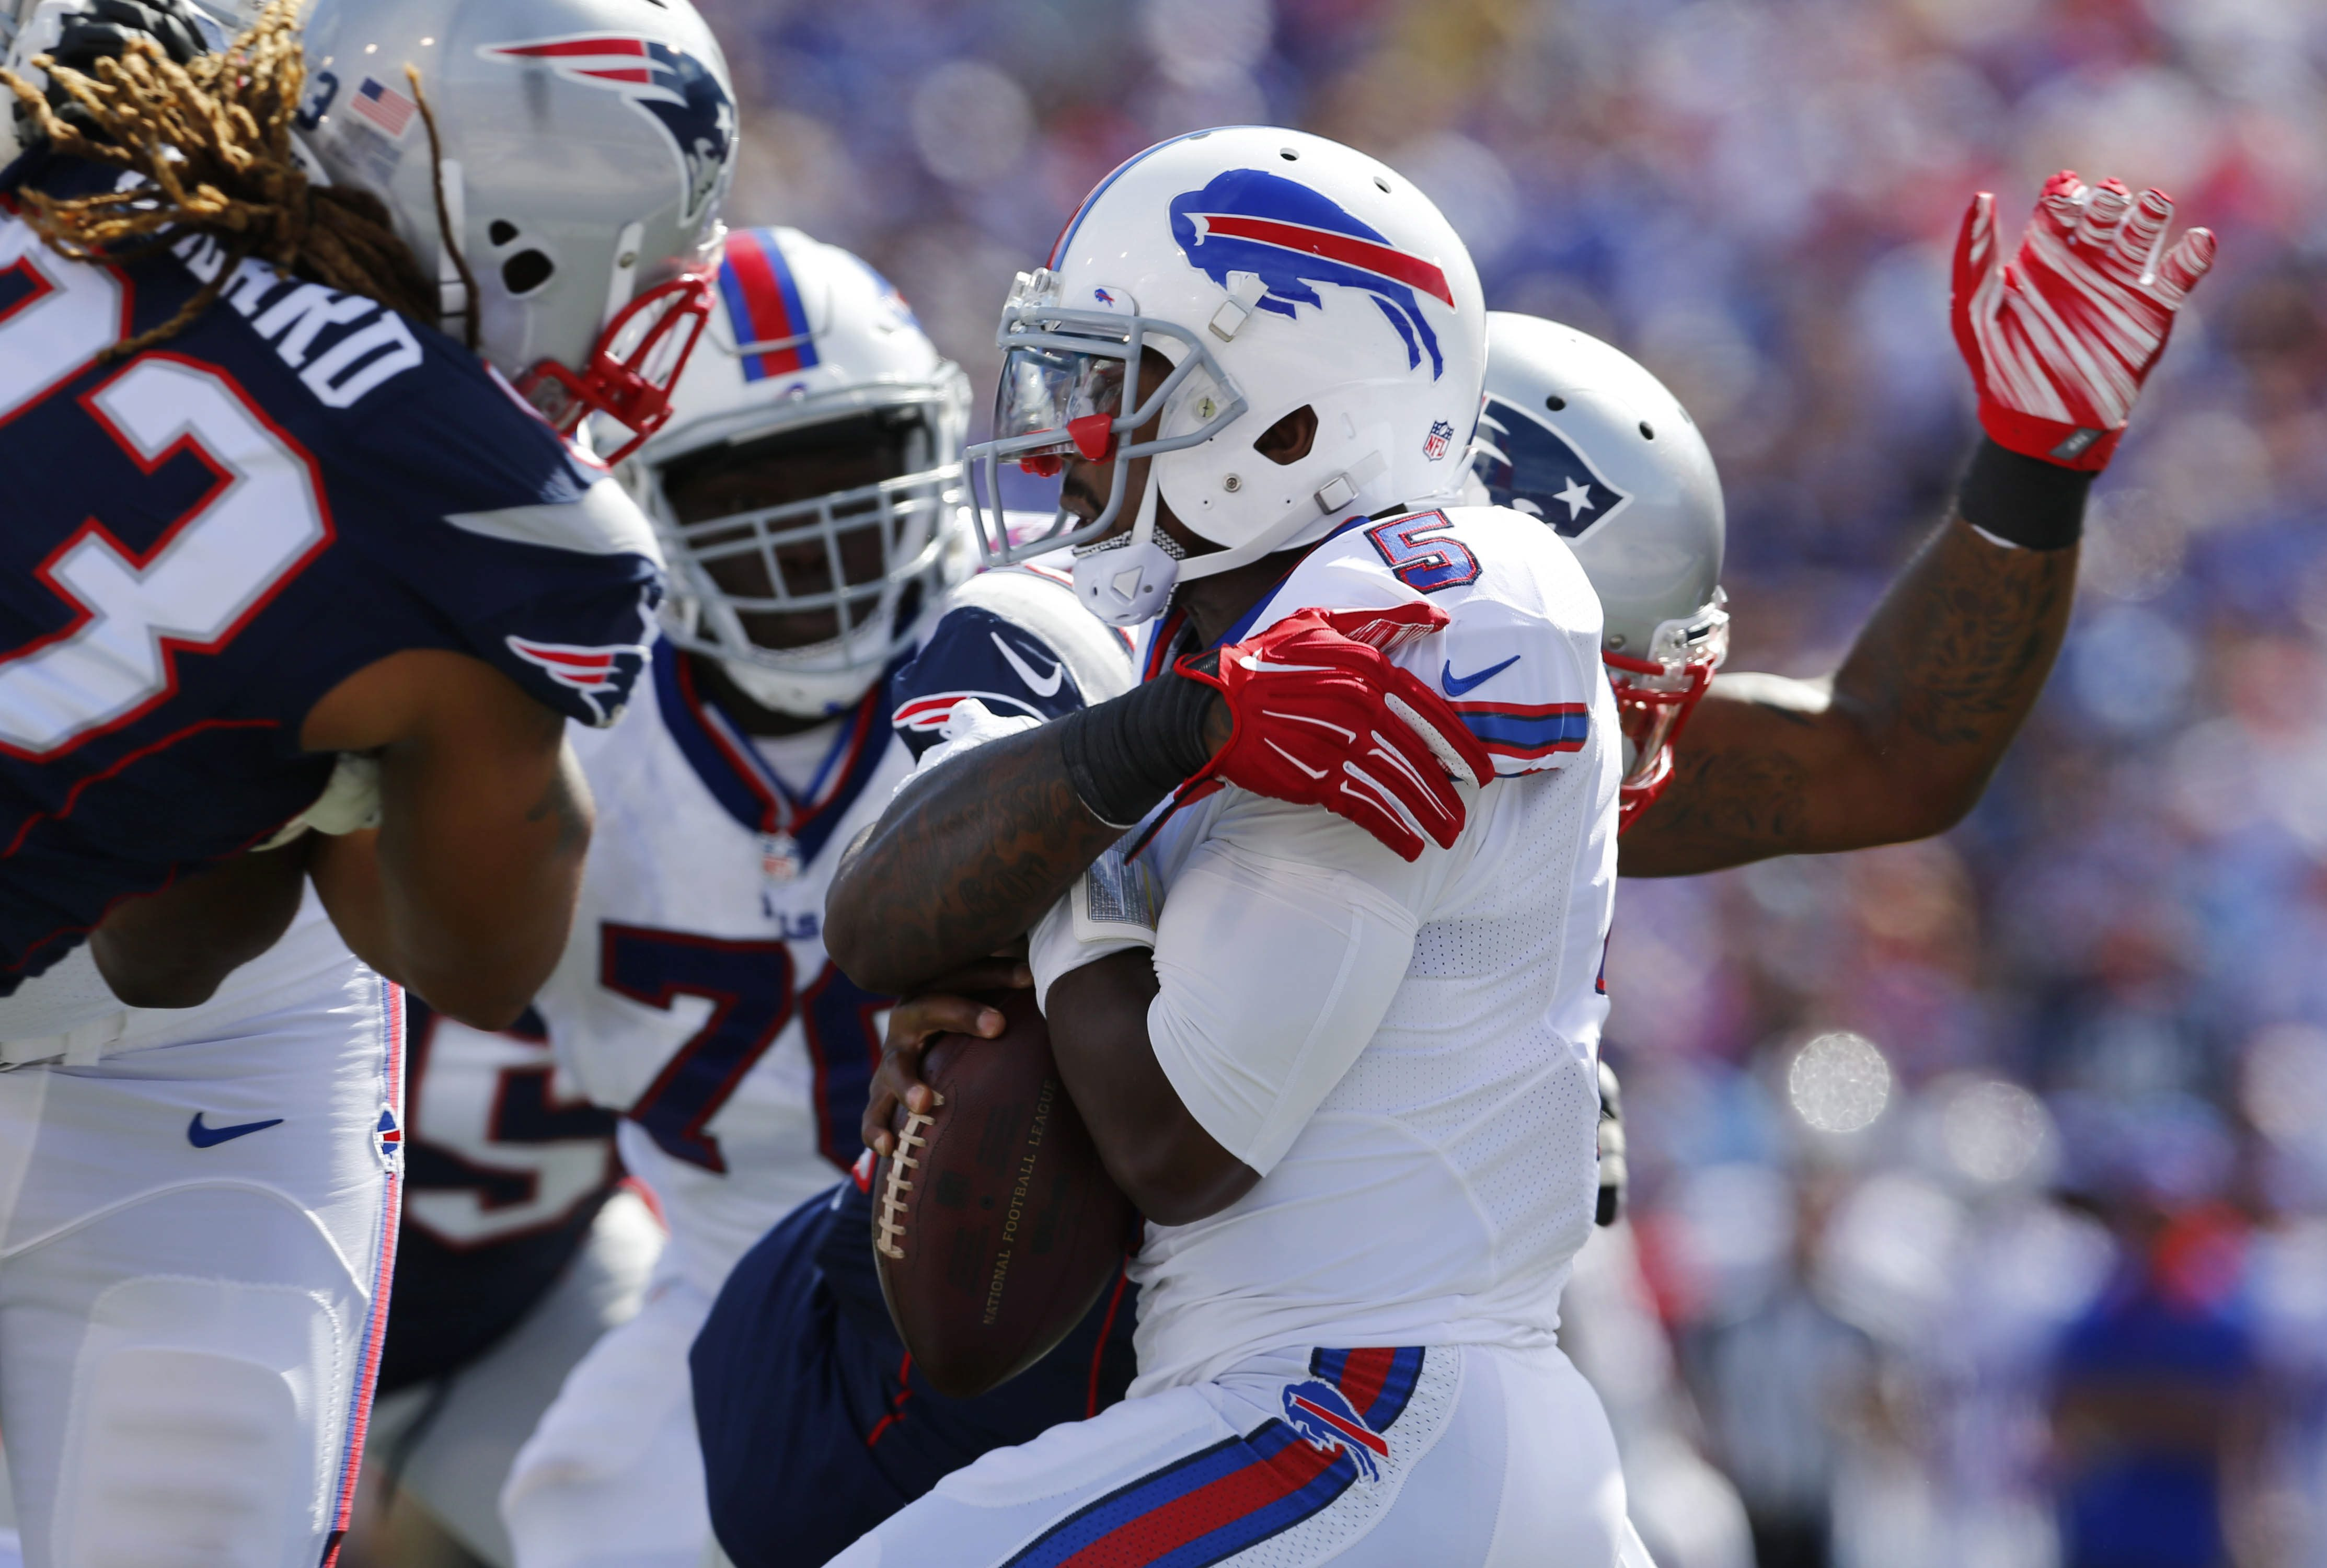 Buffalo Bills quarterback Tyrod Taylor (5) is sacked by New England Patriots linebacker Jamie Collins (91) during the first quarter. (Mark Mulville/Buffalo News)